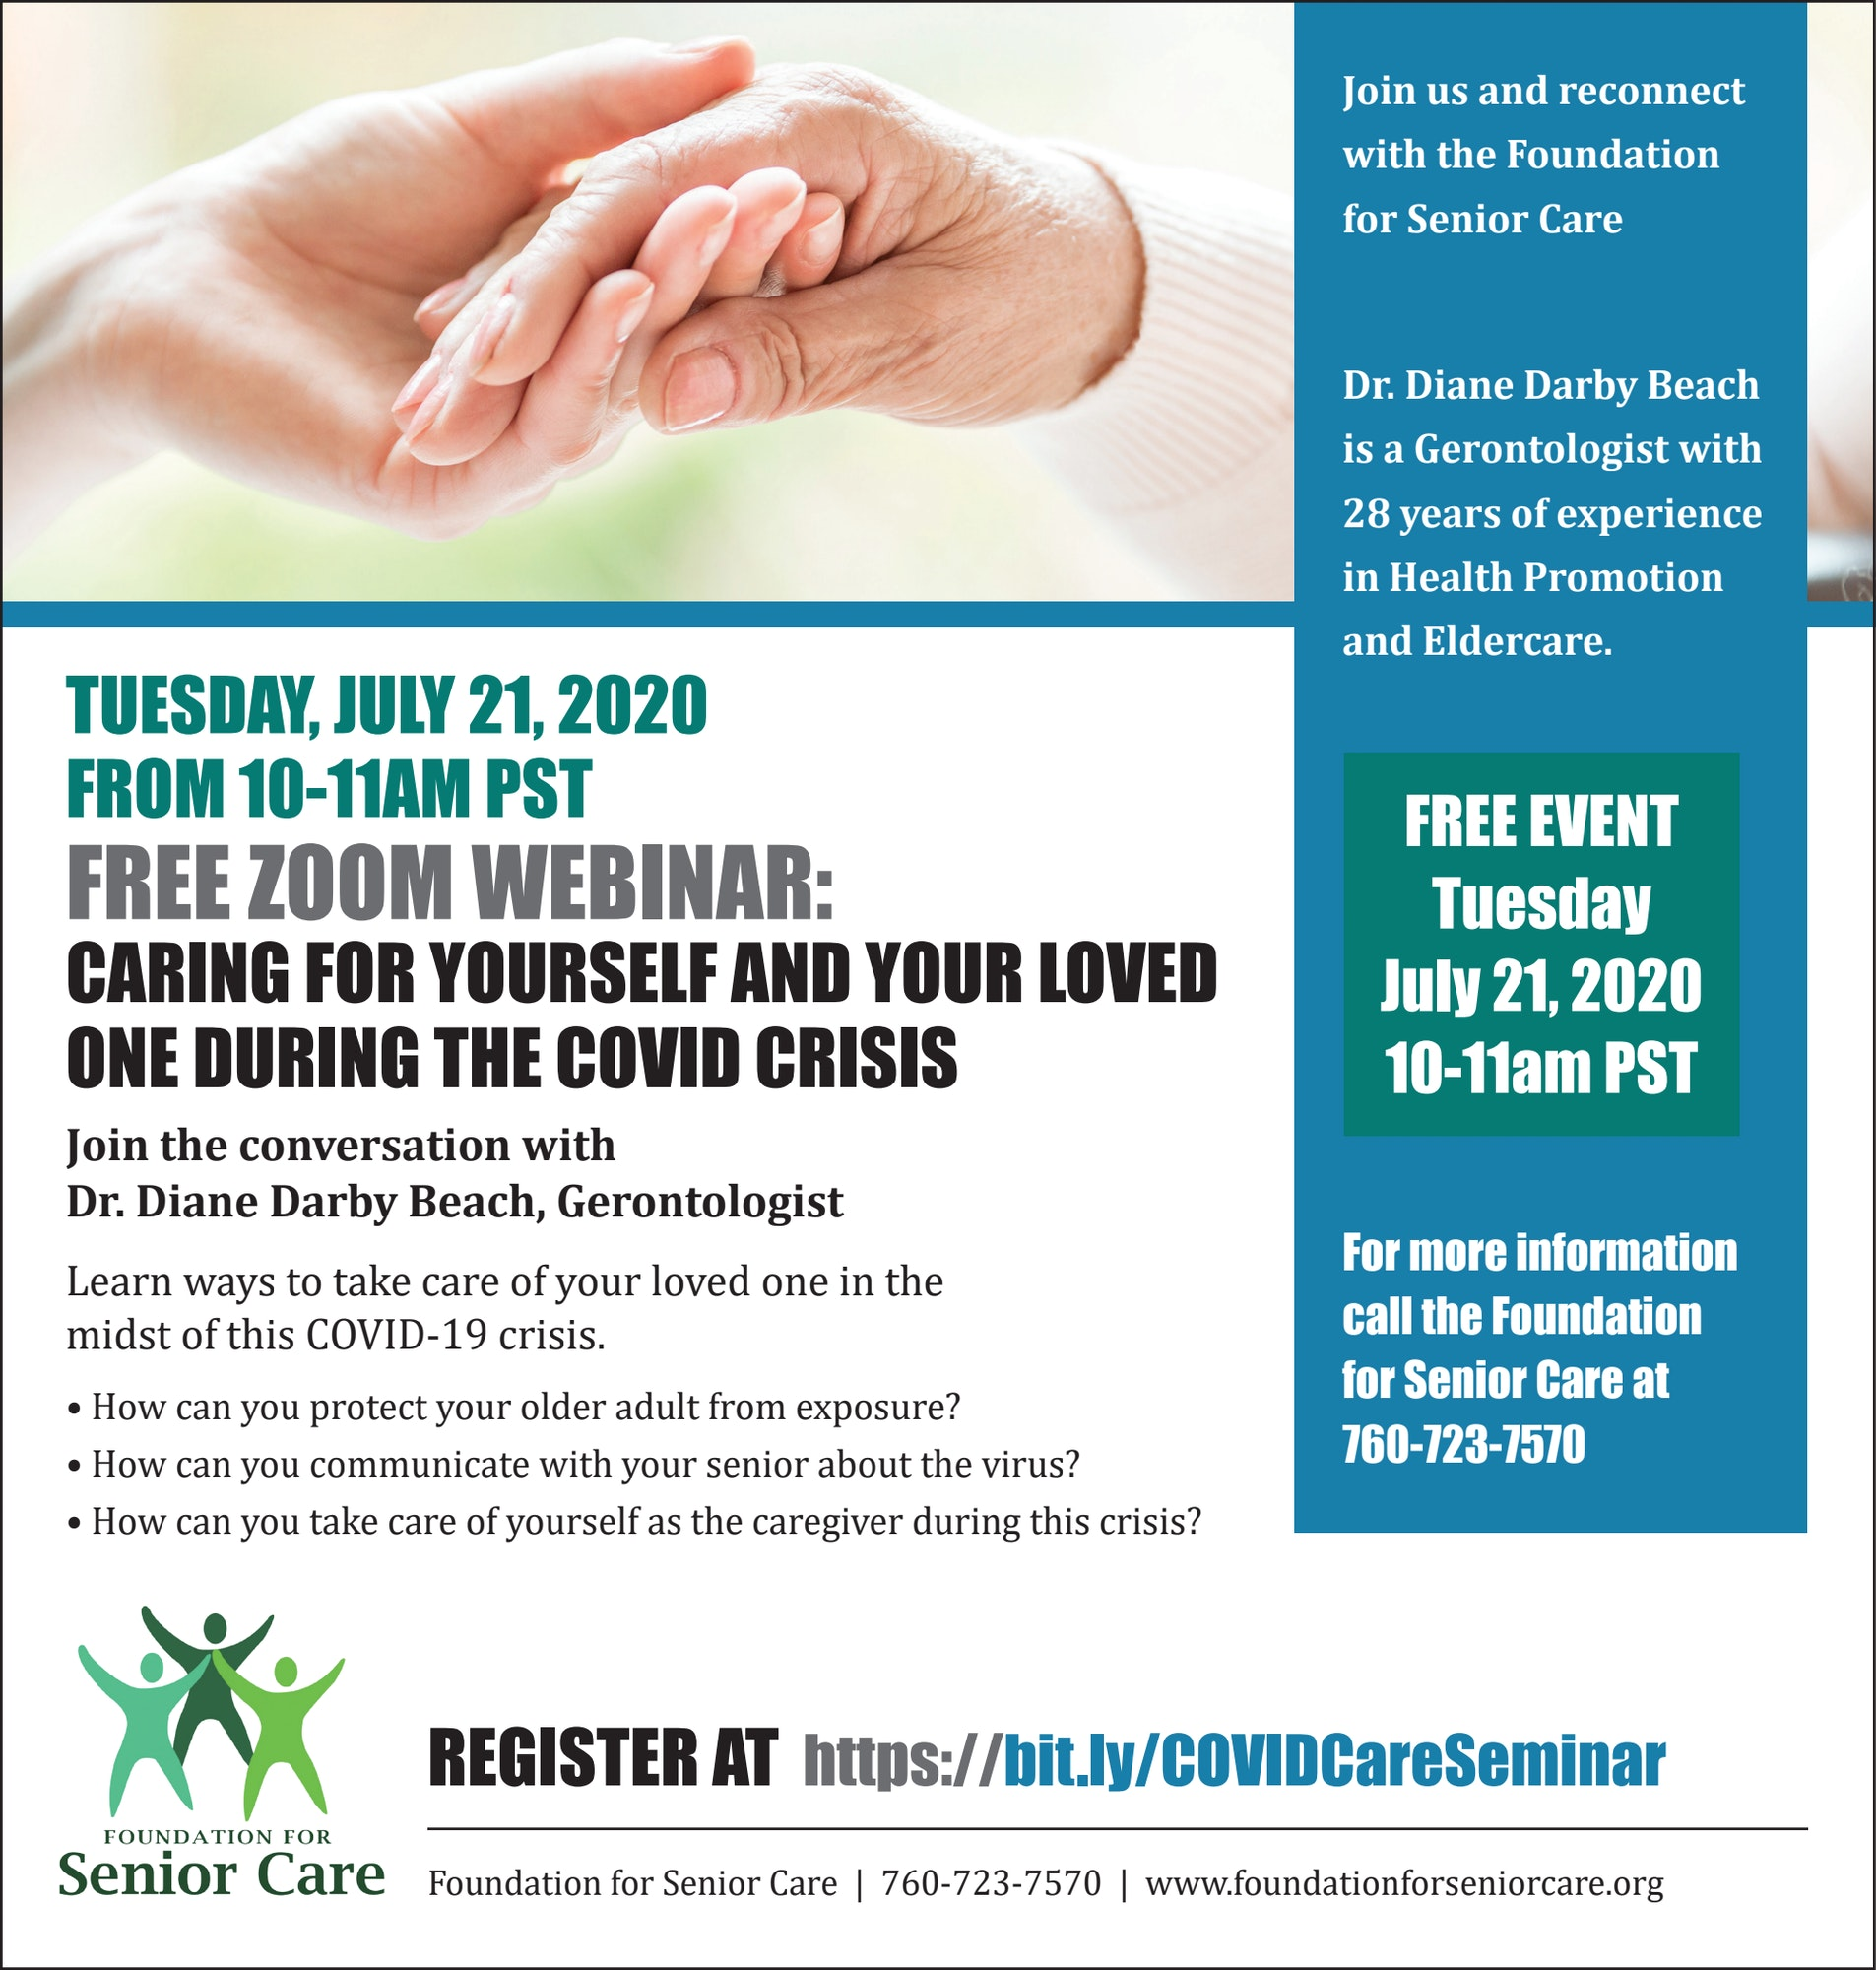 Tuesday July 21, 10am-11am caring for yourself and your loved one during the COVID crisis zoom meeting register at https://bit.ly/COVIDCareSeminar